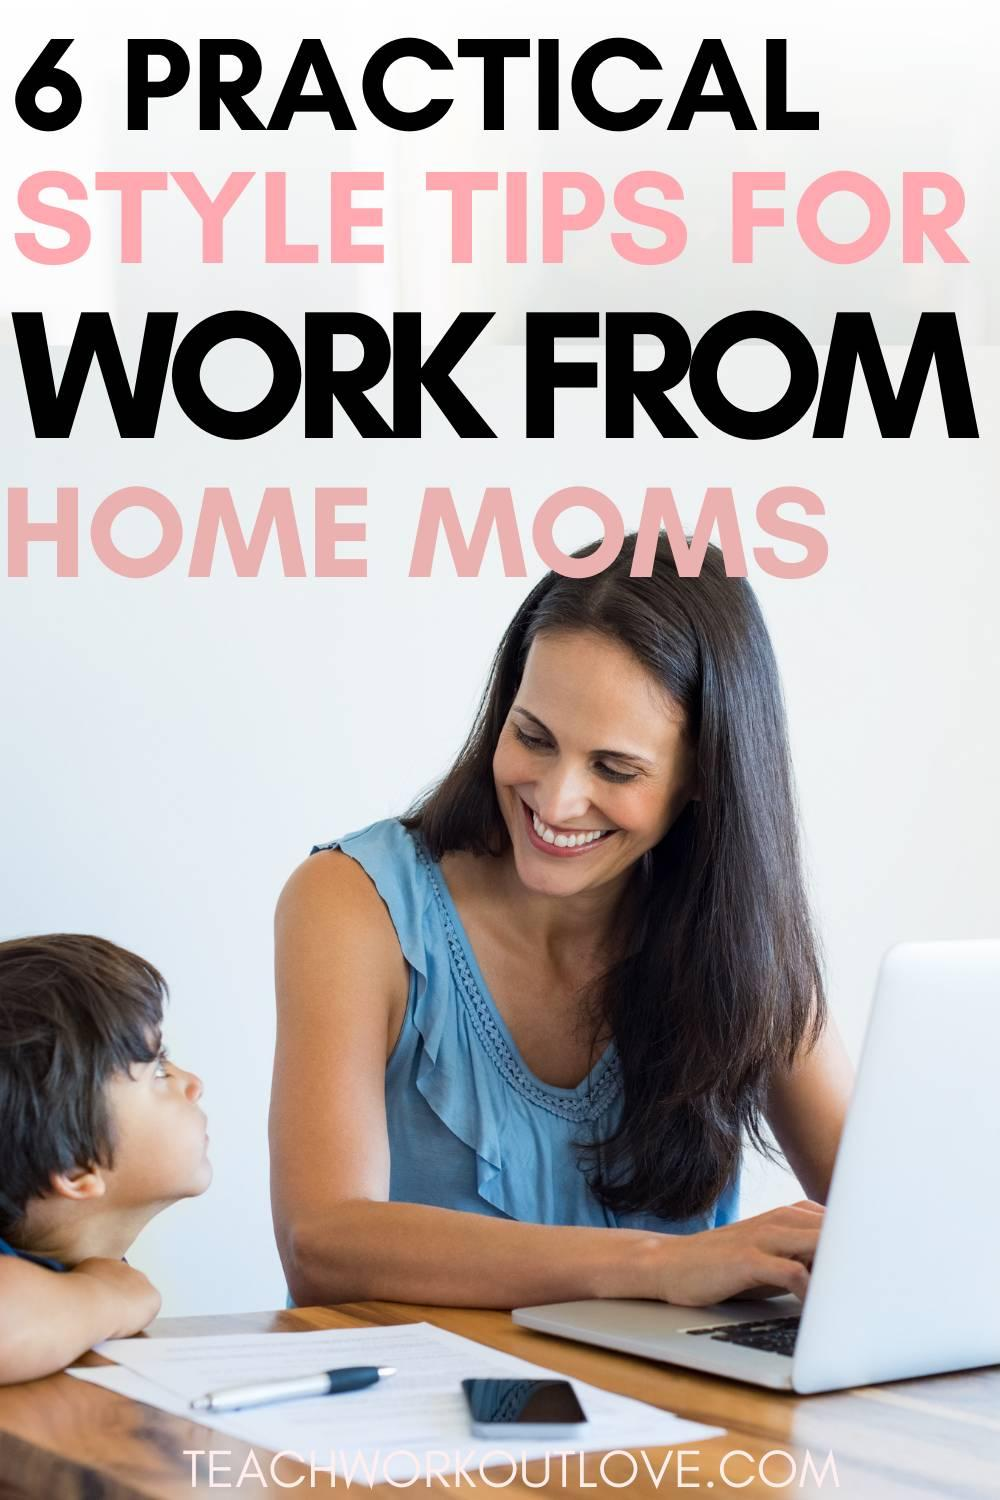 Working from home has changed outfits that we normally wear to work drastically. Struggling with style tips for working from home? Read on.